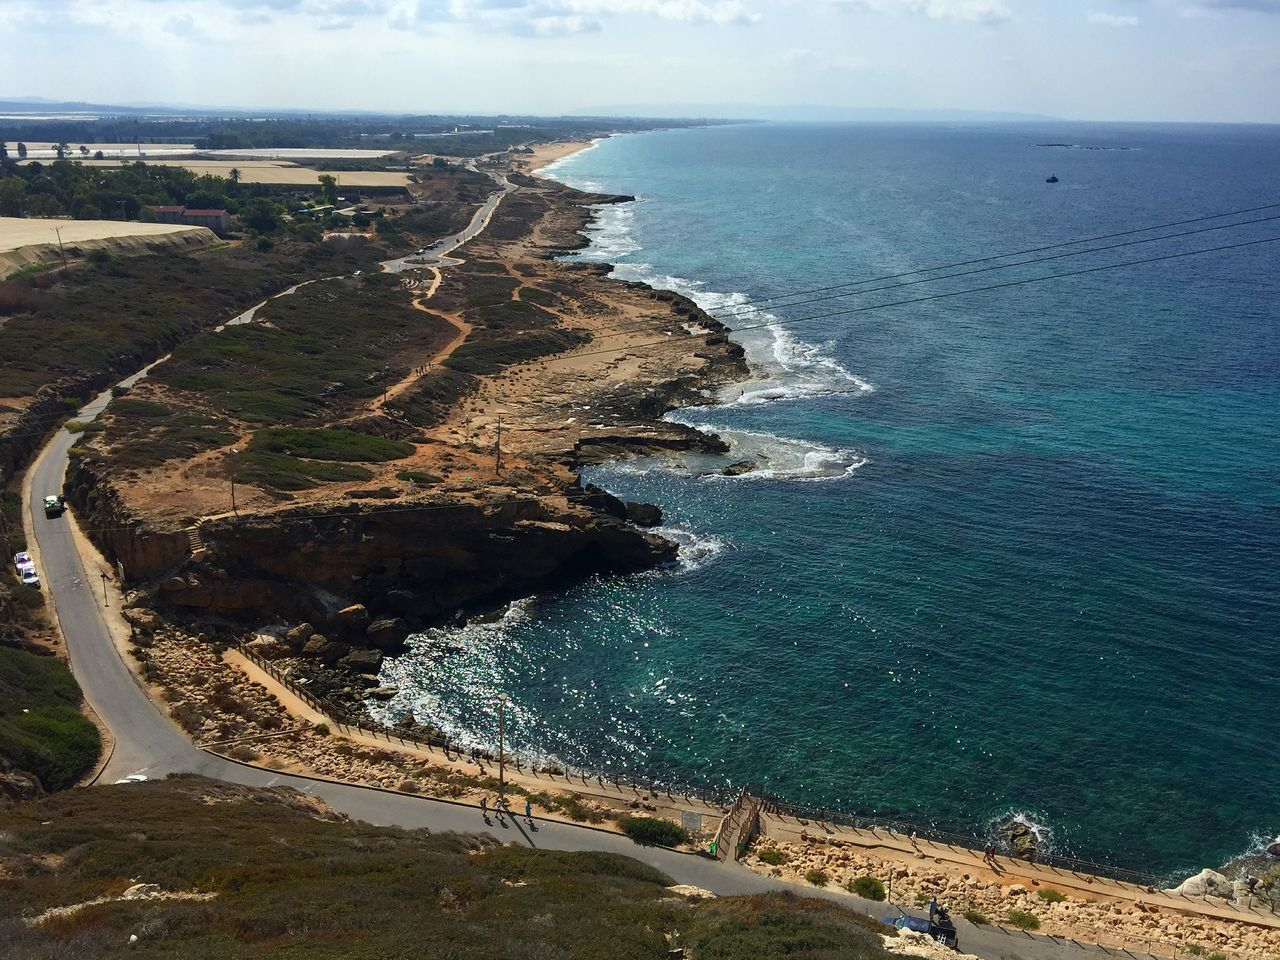 Scenic View Of Sea Seen From Mountain At Rosh Hanikra Grottoes